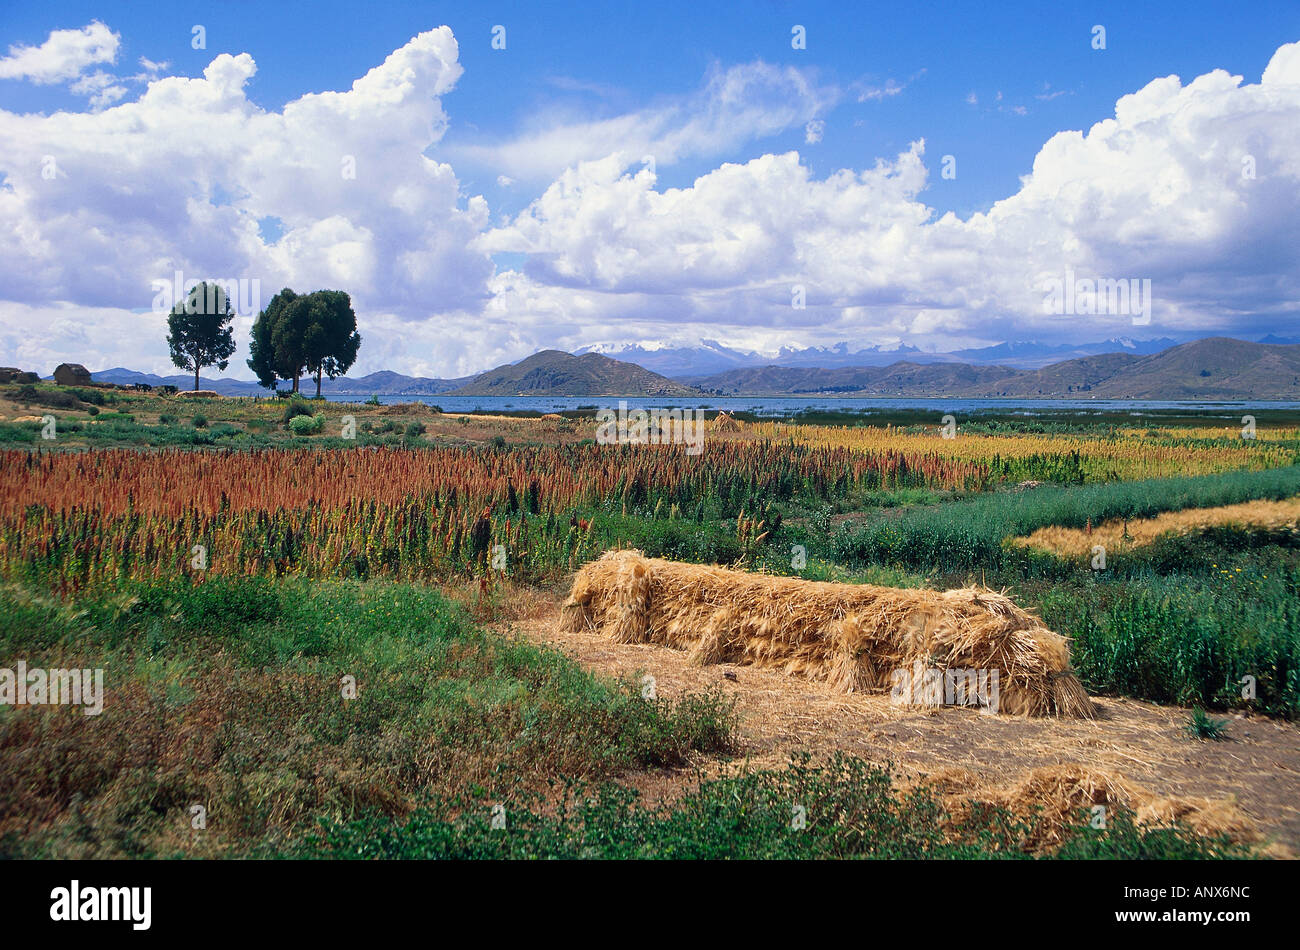 quinoa fields and agricultural crops lake titicaca border area of peru and bolivia - Stock Image